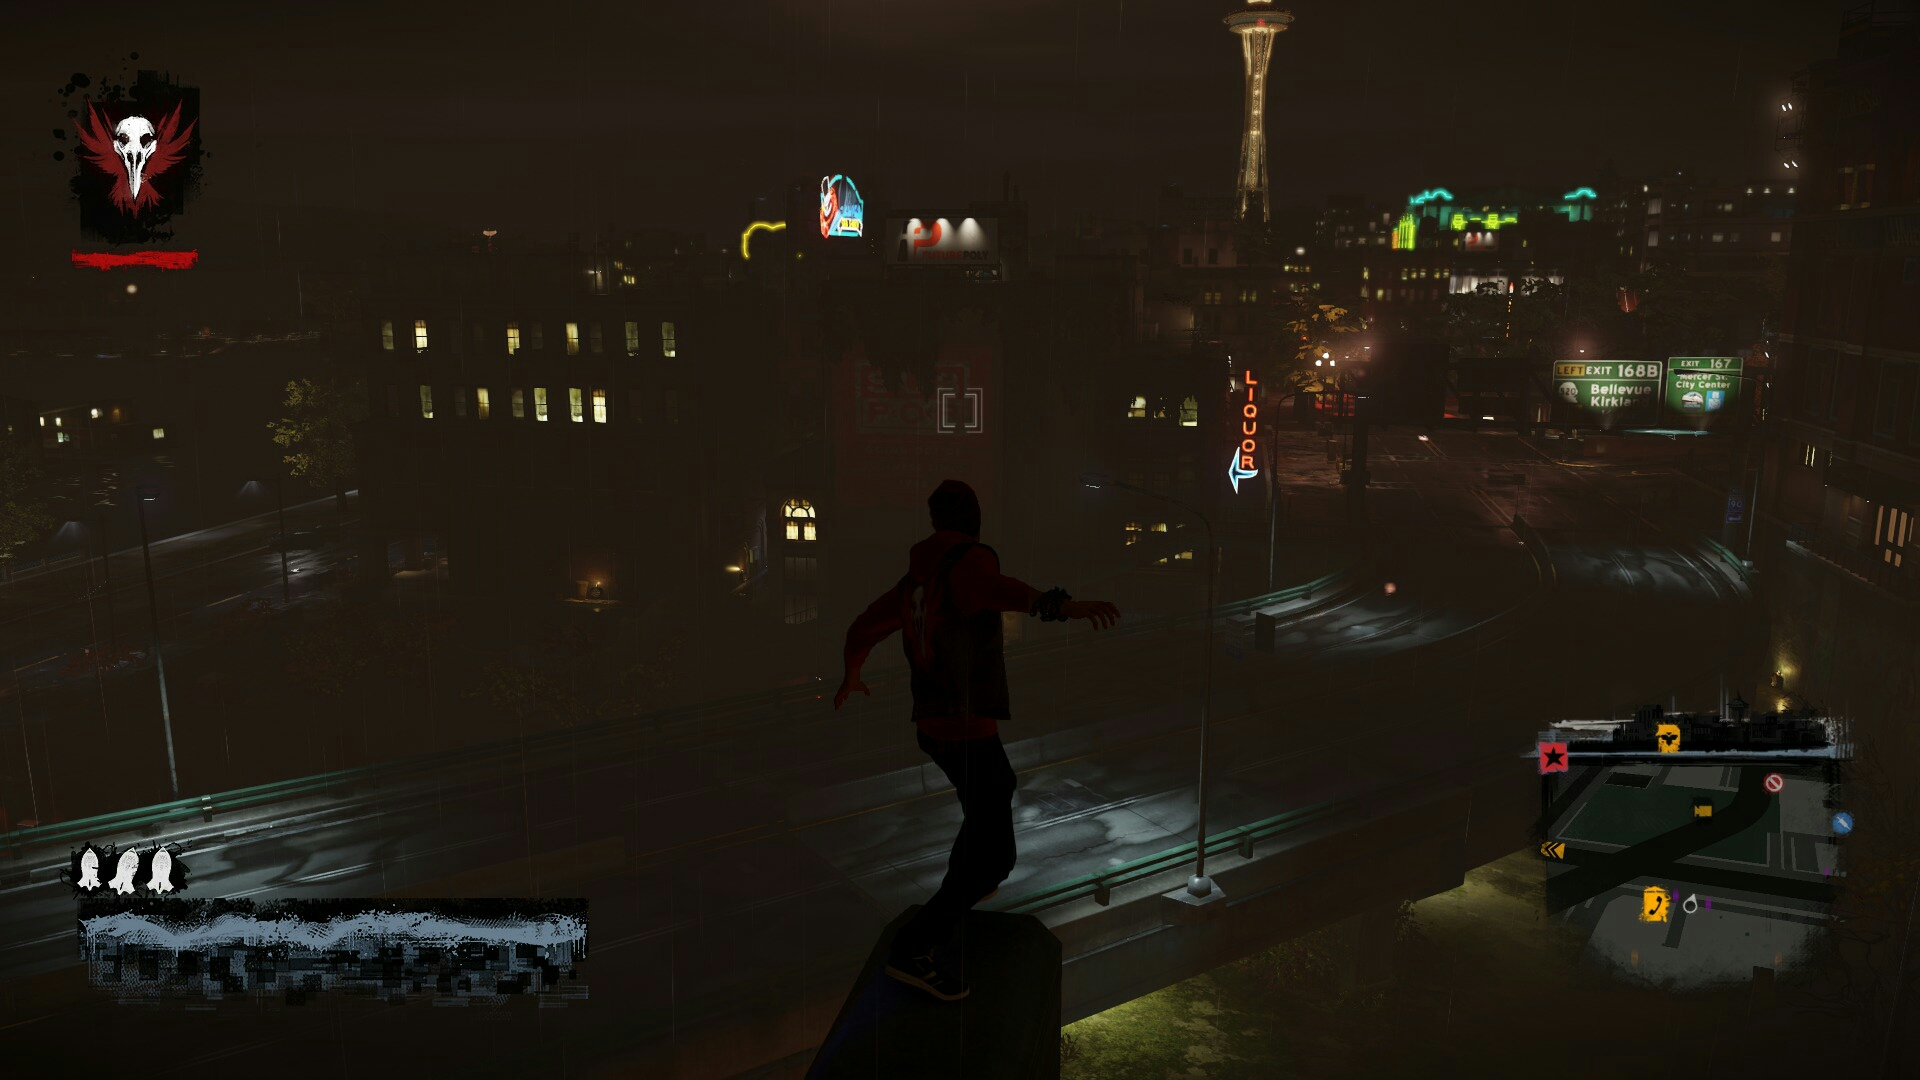 infamous-ss-night-2